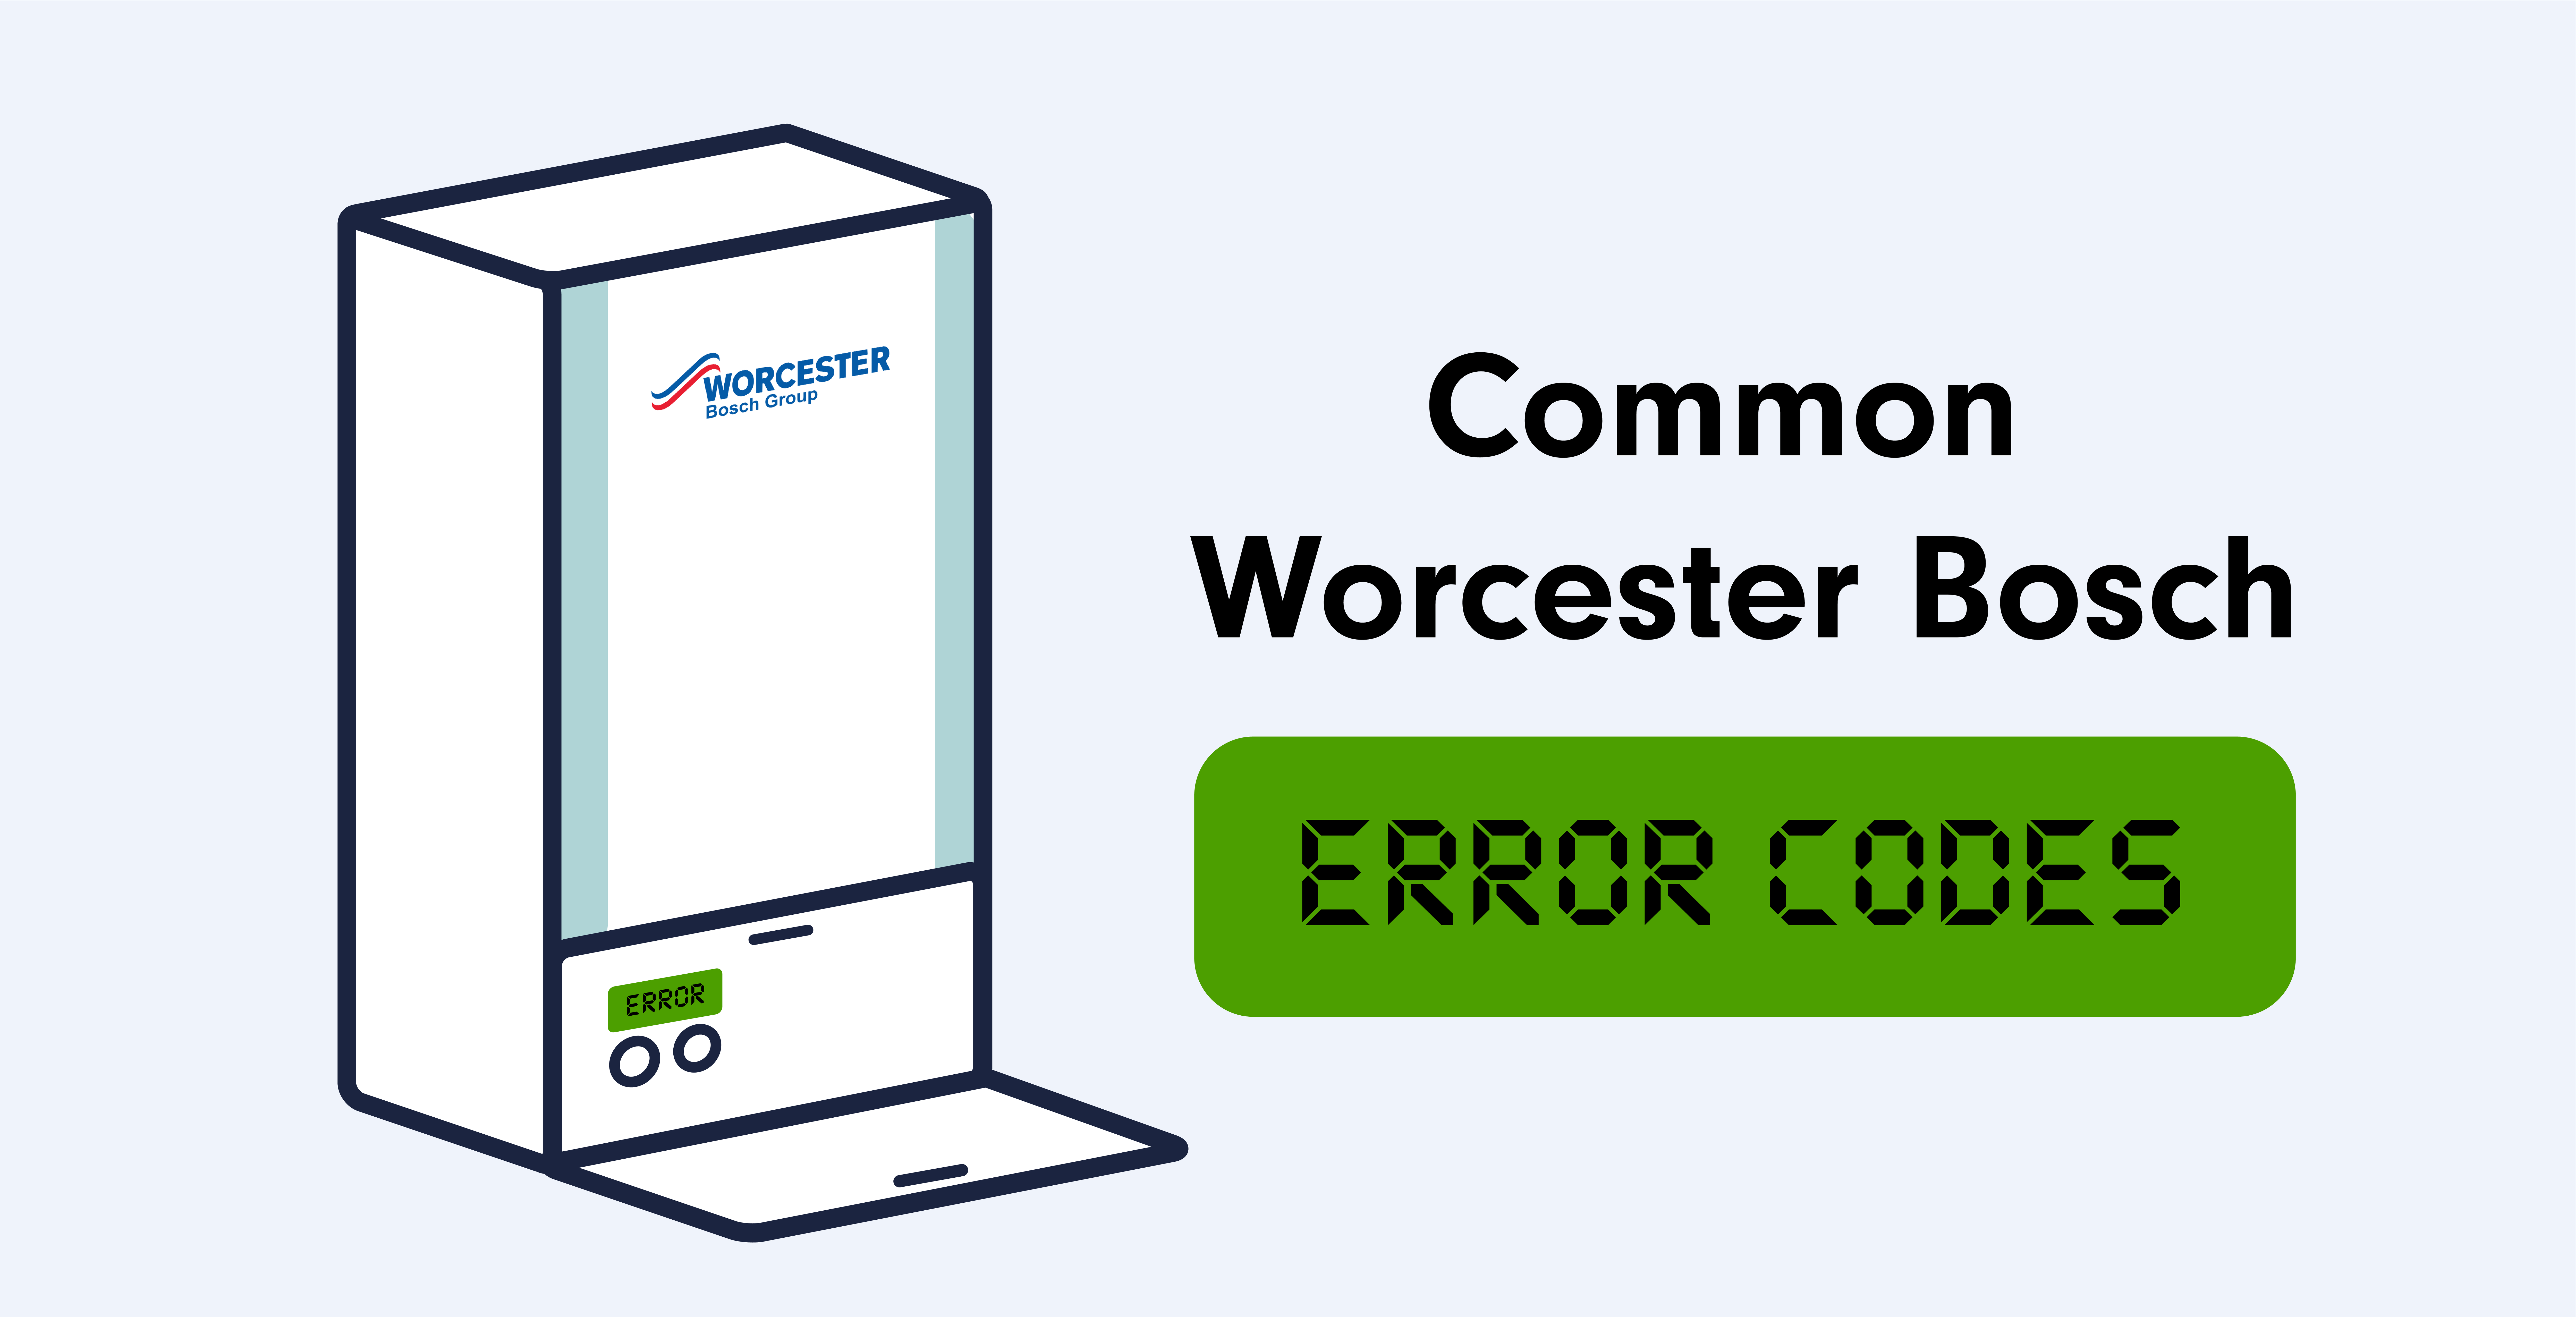 Common Worcester Bosch Boiler Error Codes